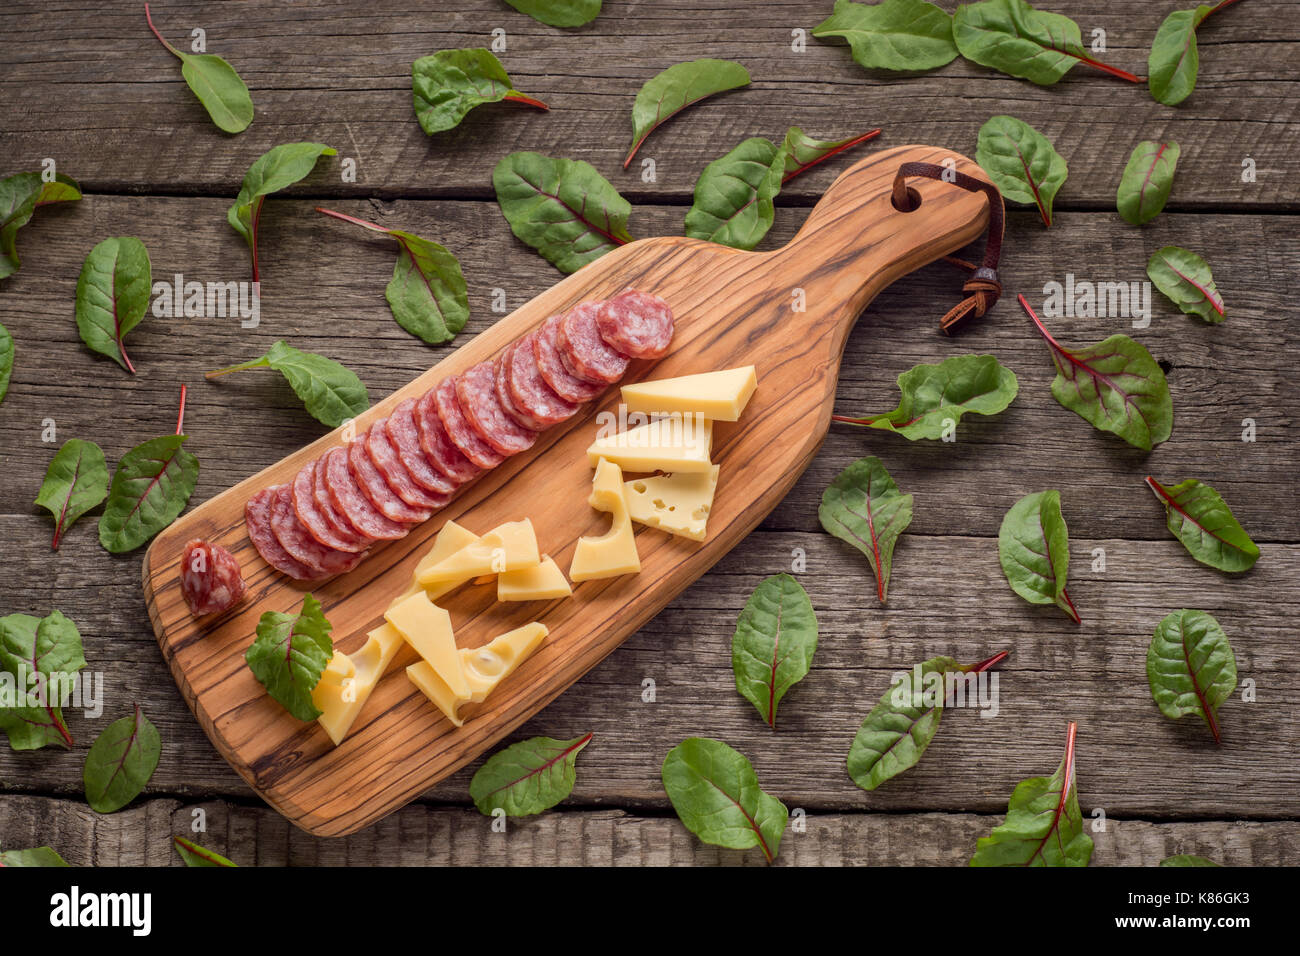 cheese and salami on kitchen board on rustic background. Top view with copy space and herbs . - Stock Image